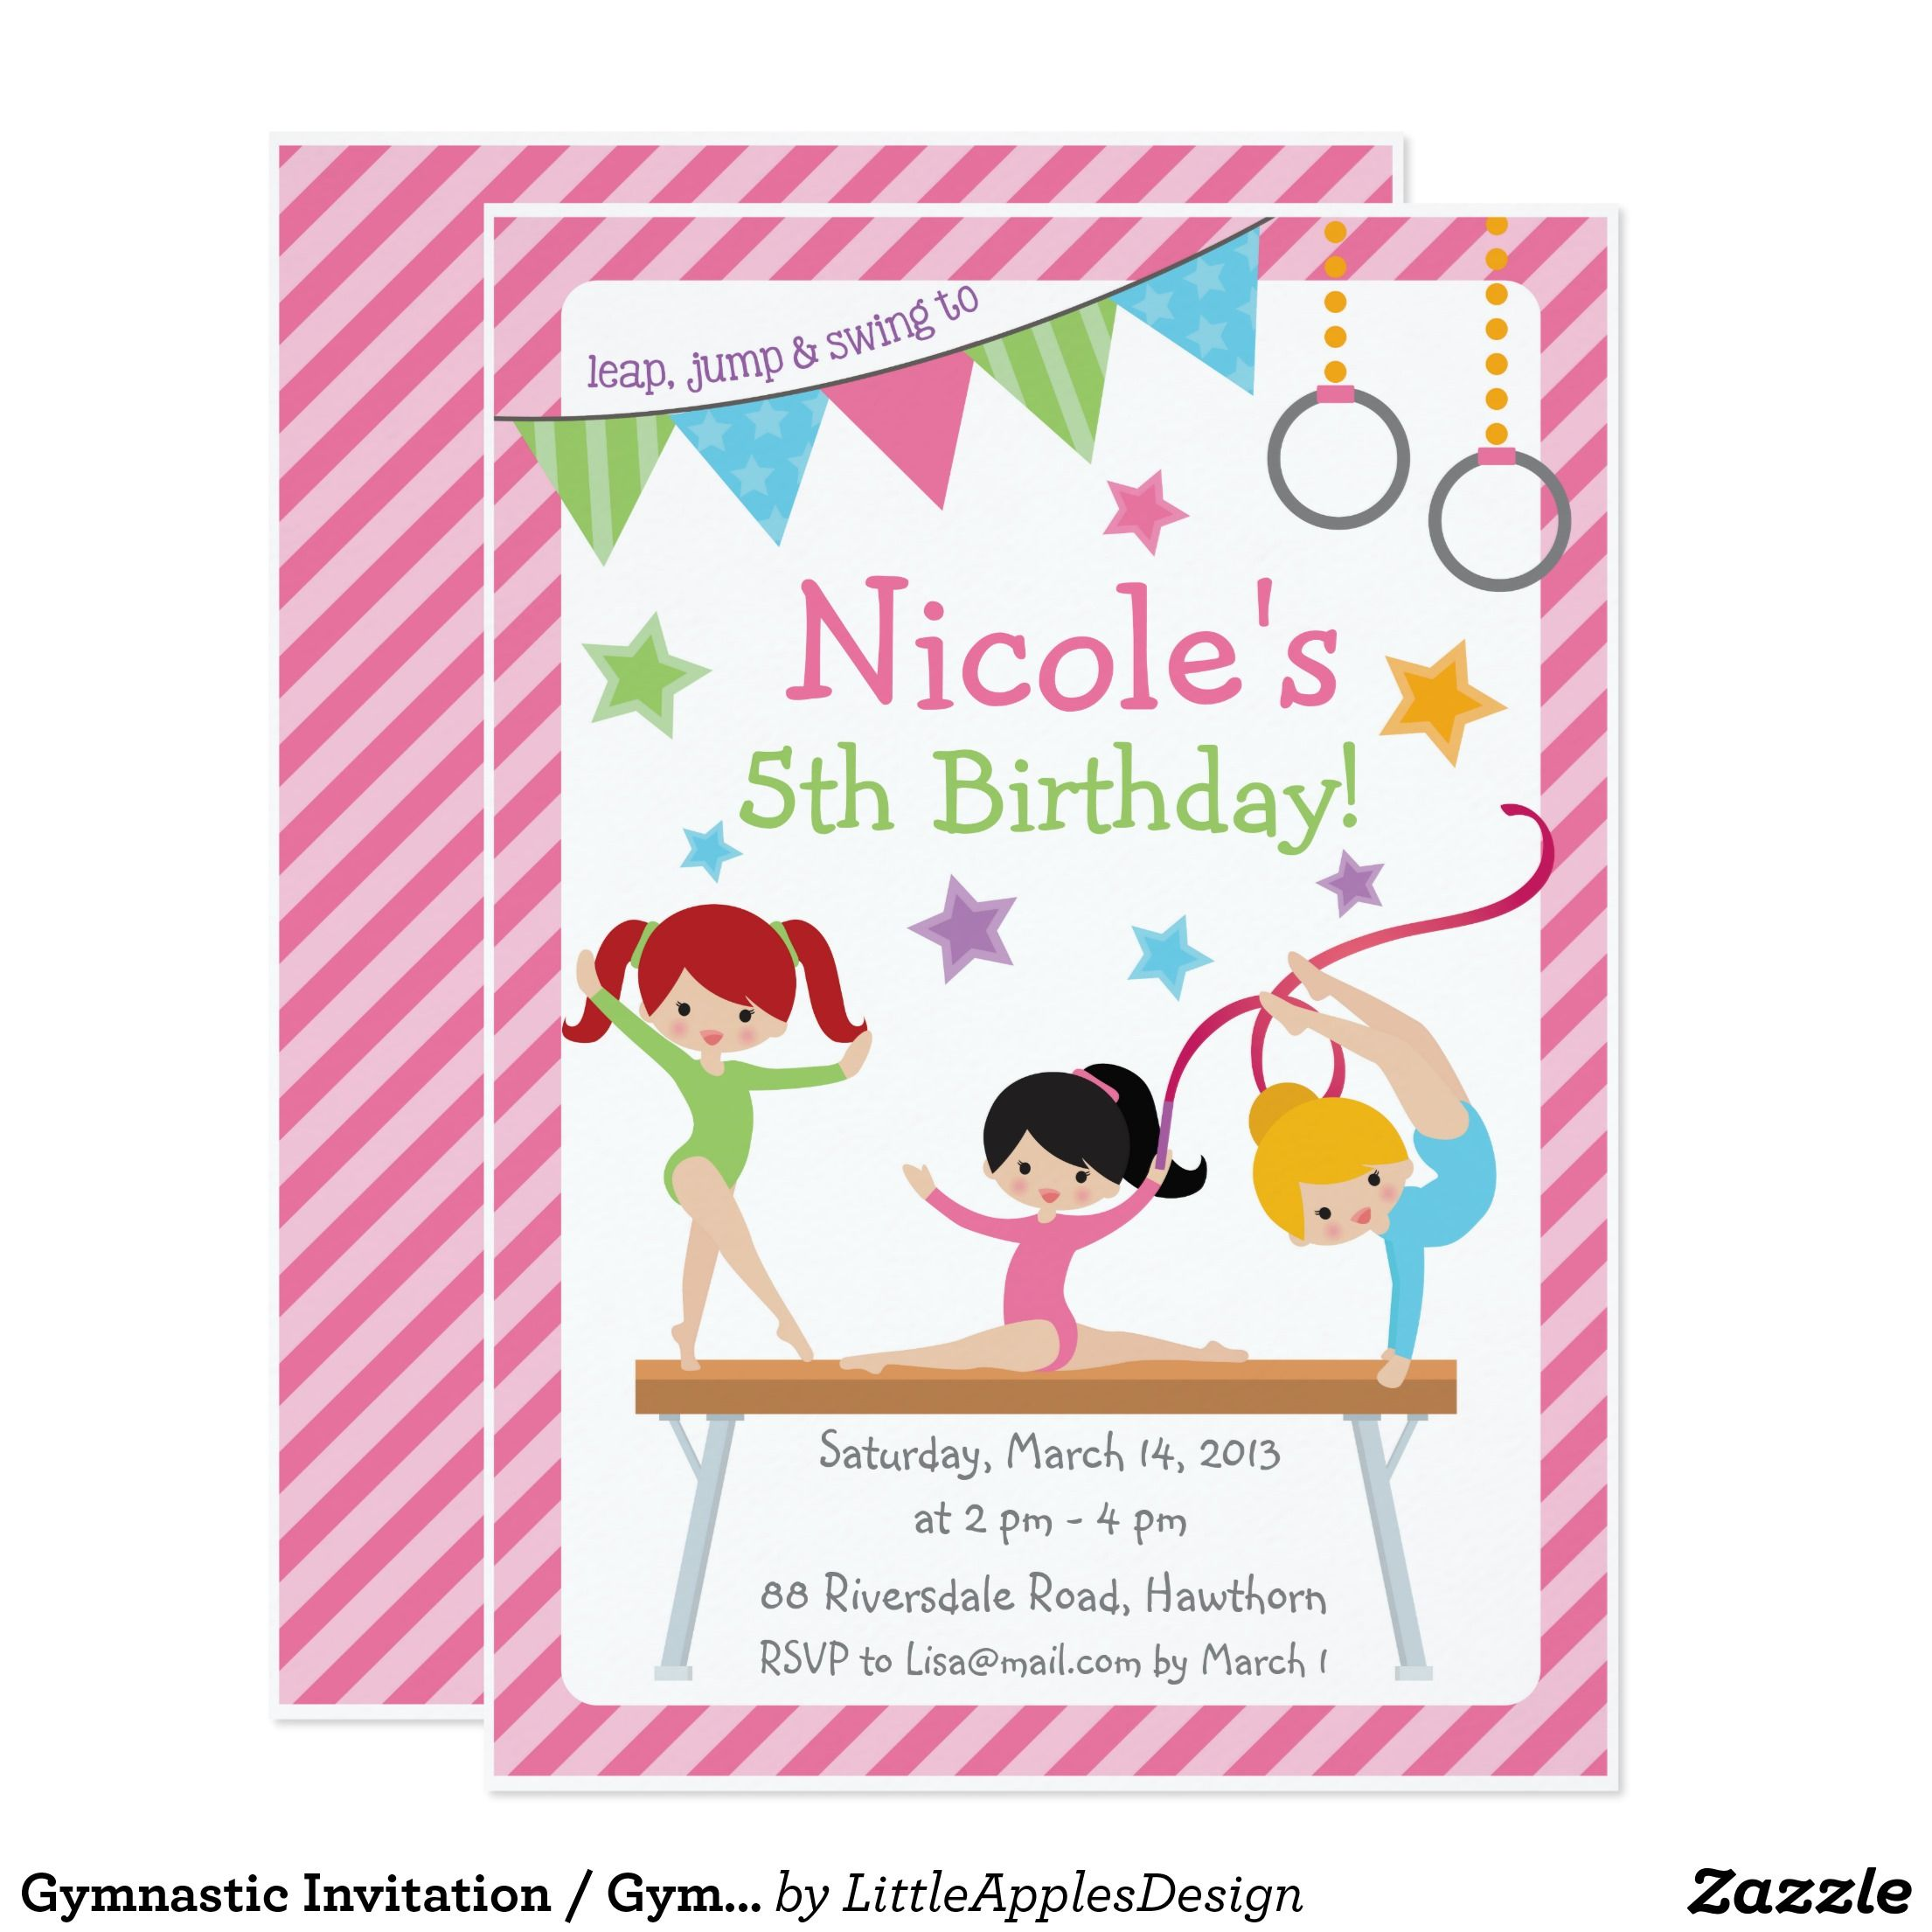 Gymnastic Invitation / Gymnastic Birthday Invite | Gymnastics party ...